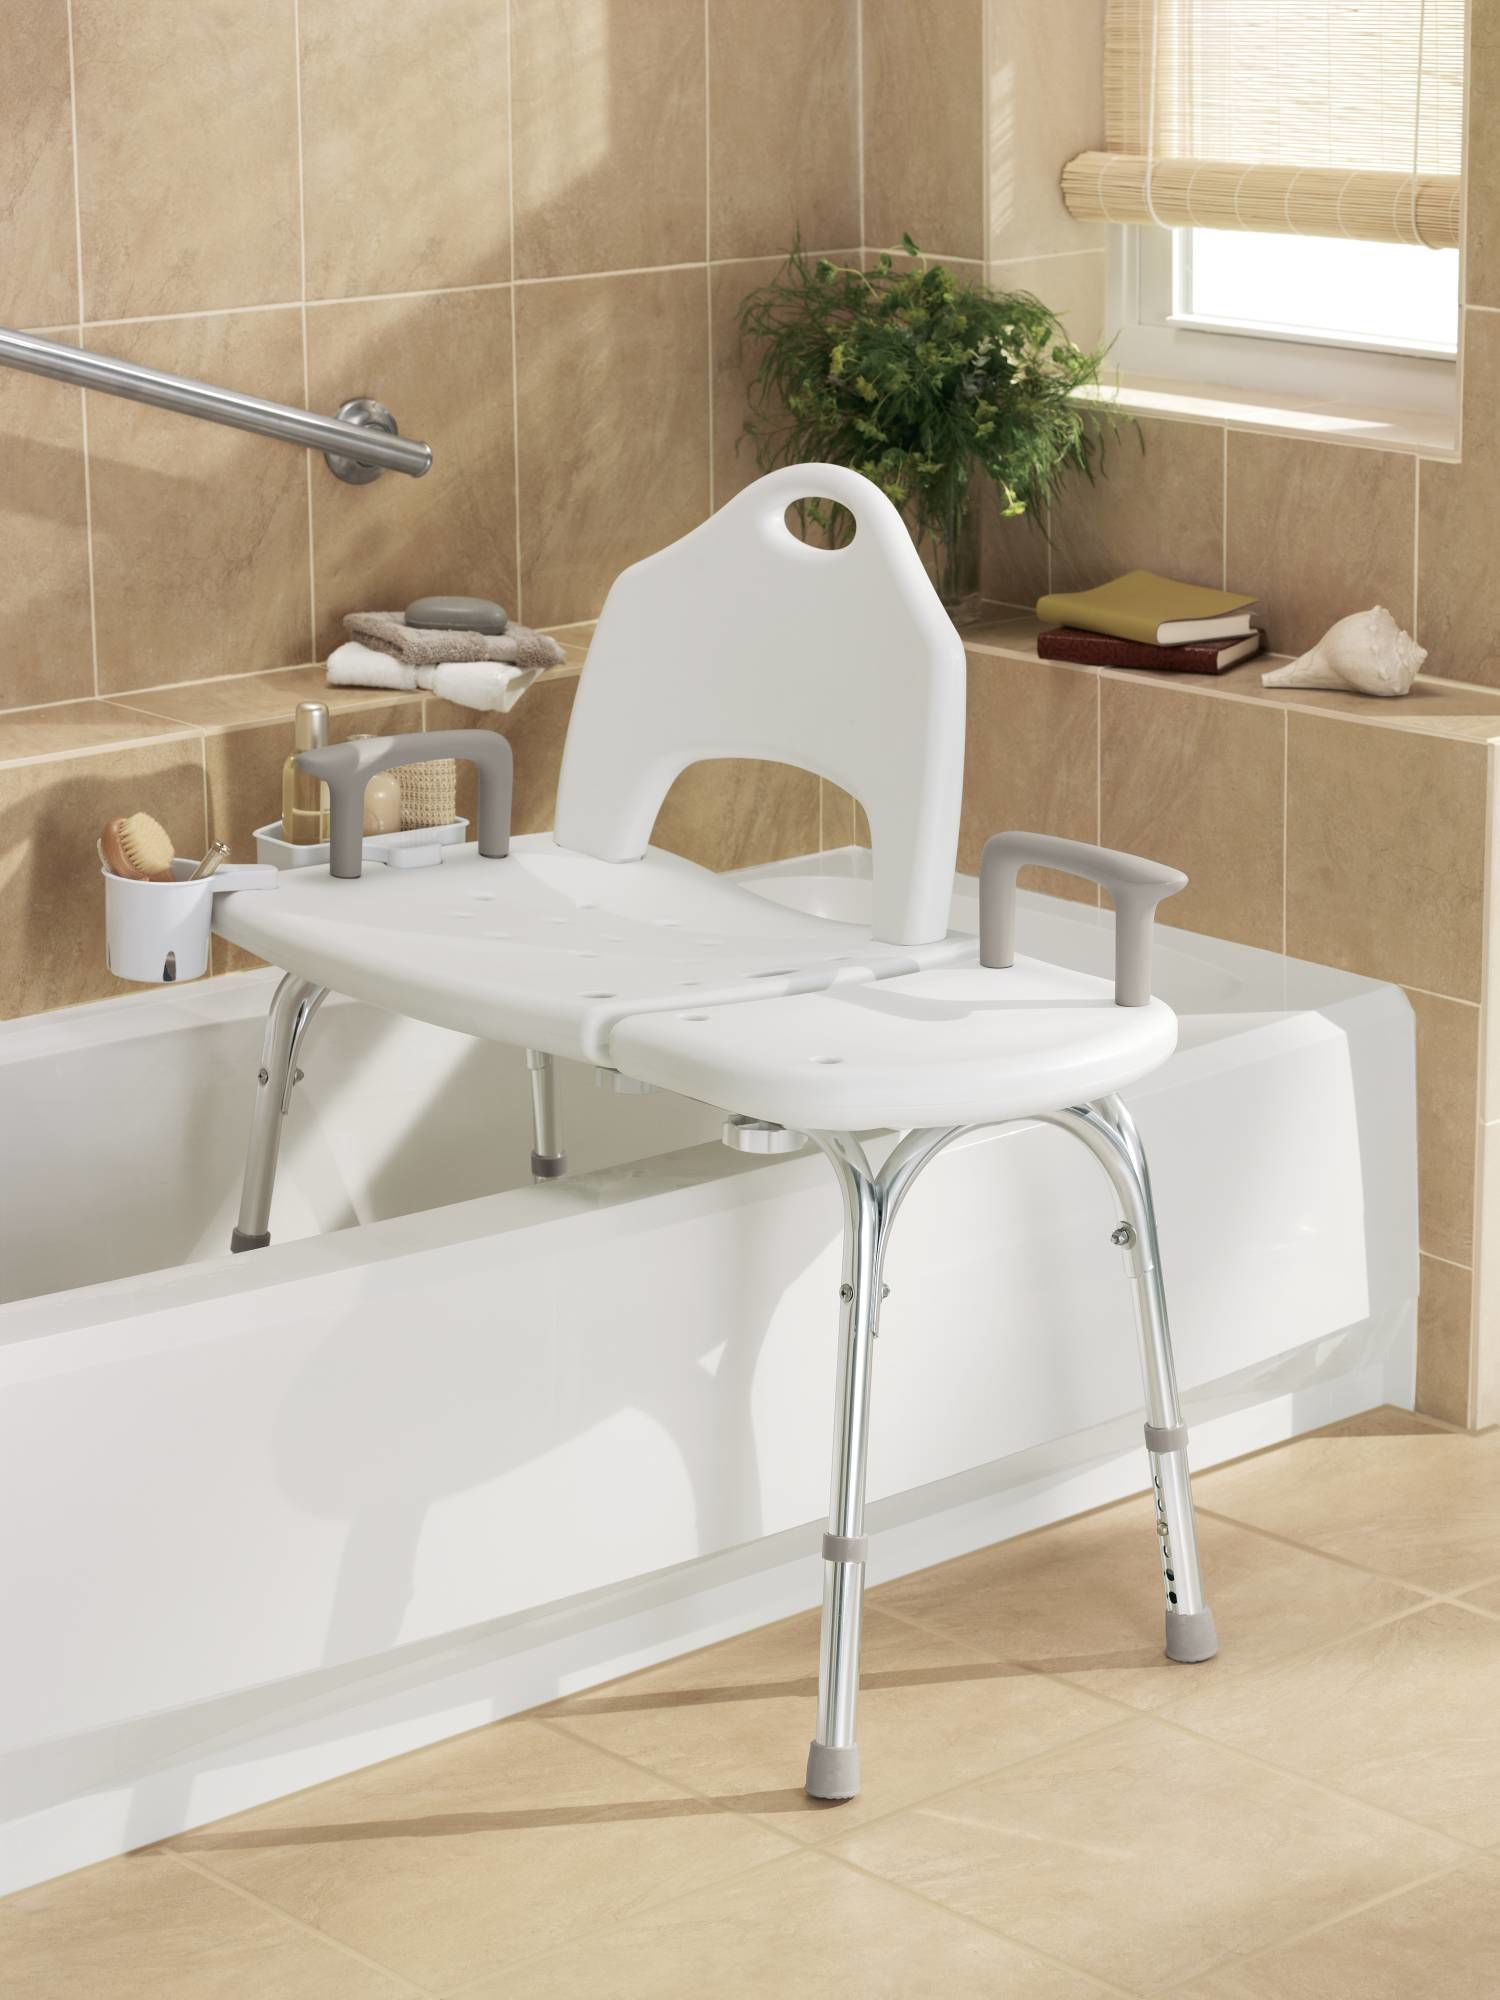 like tub atmosphere seat siglo your relaxing japanese floors a tips integral tubcreate within soaking in the spa bathroom round with bath home vanity